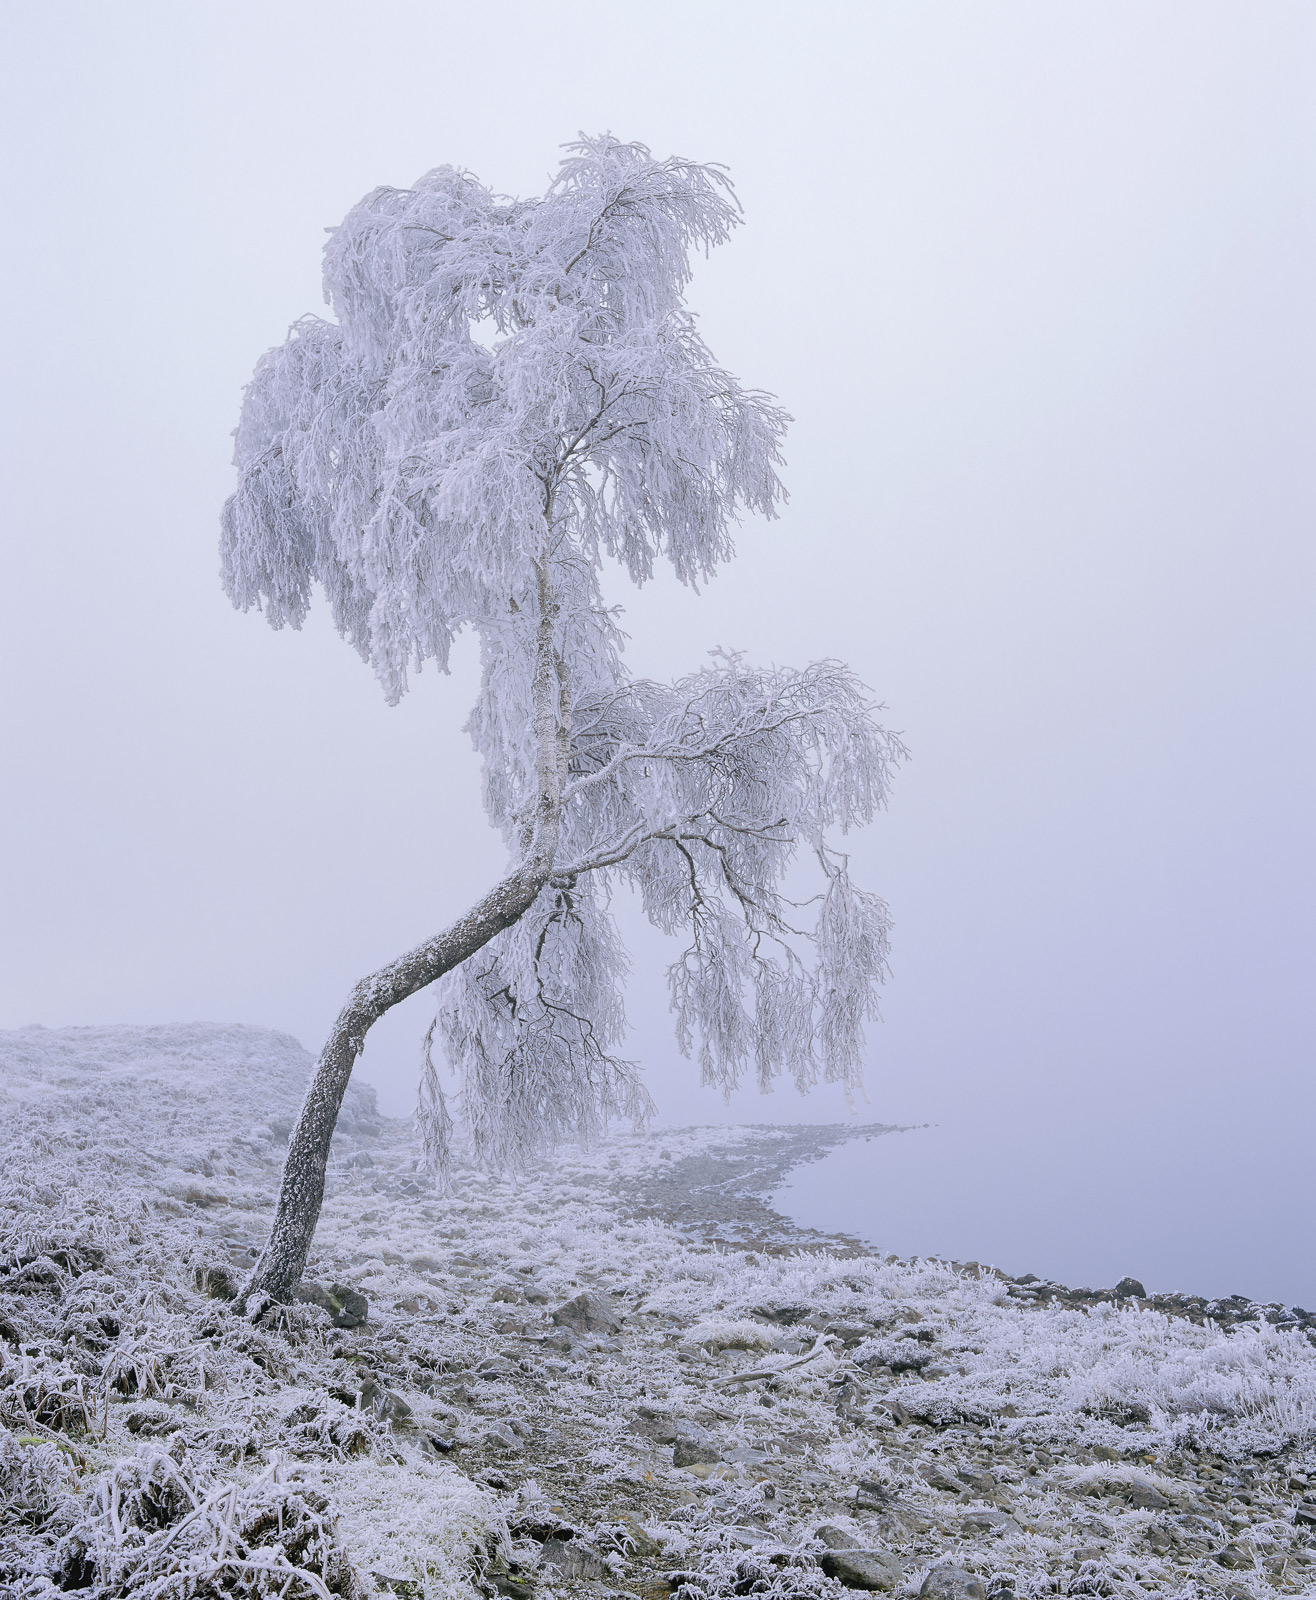 A deep frozen crooked birch tree suffers the ravages of freezing fog visibly settling on each tiny twig creating splintered rime...